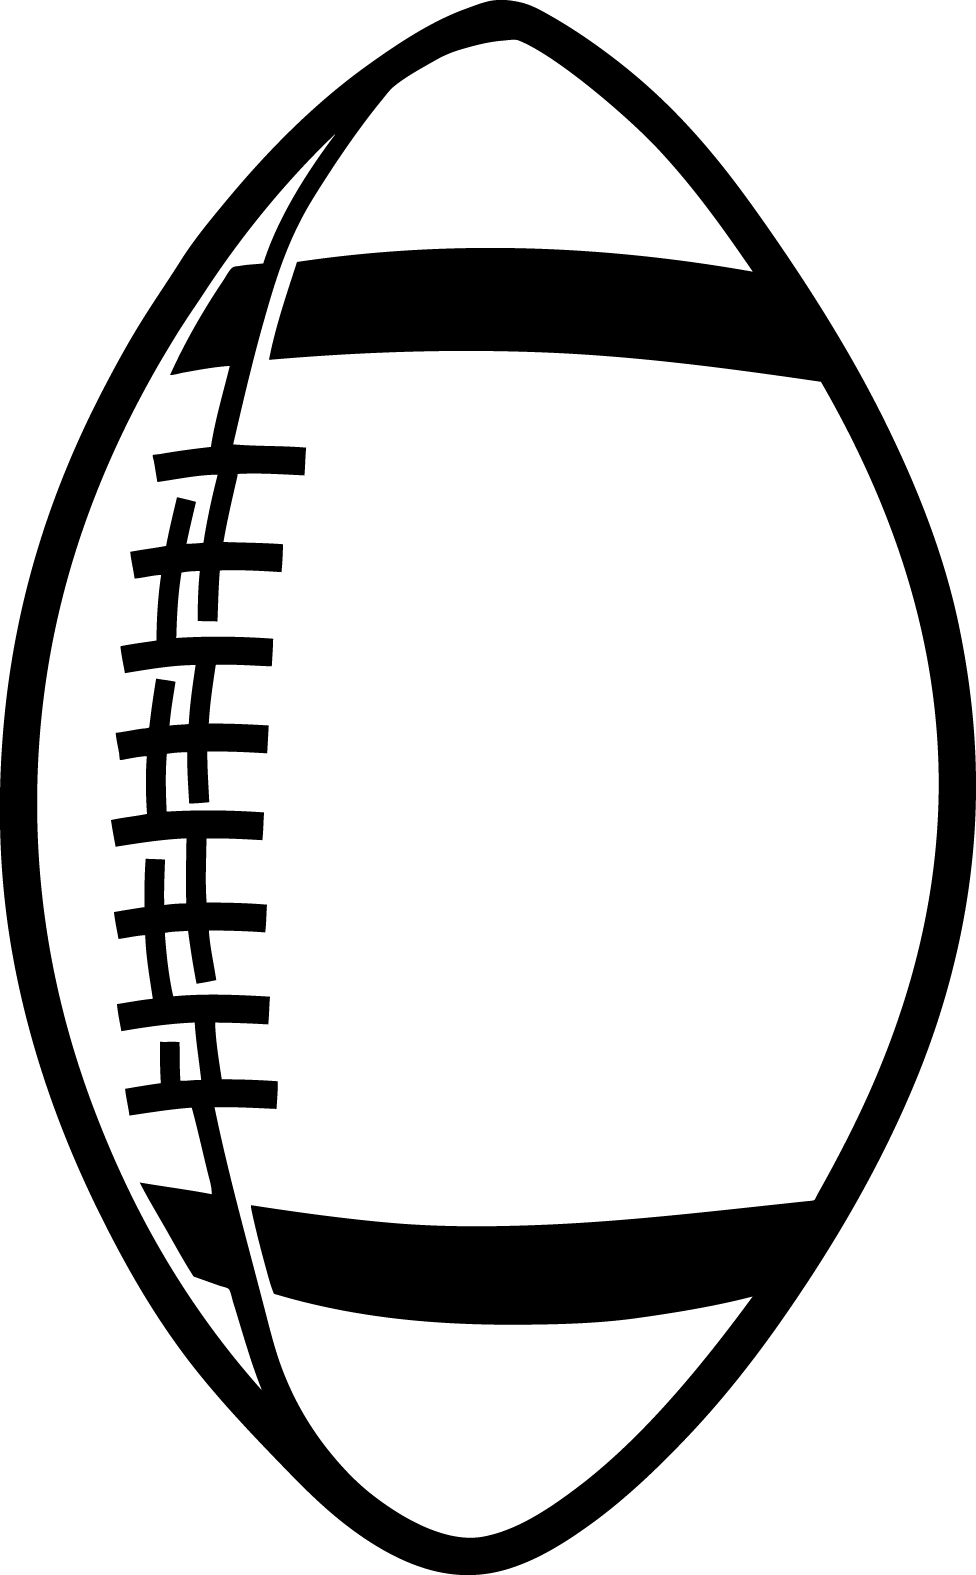 Clipart sports football graphic library Dragonfly Outline Clipart | Clipart Panda - Free Clipart Images ... graphic library